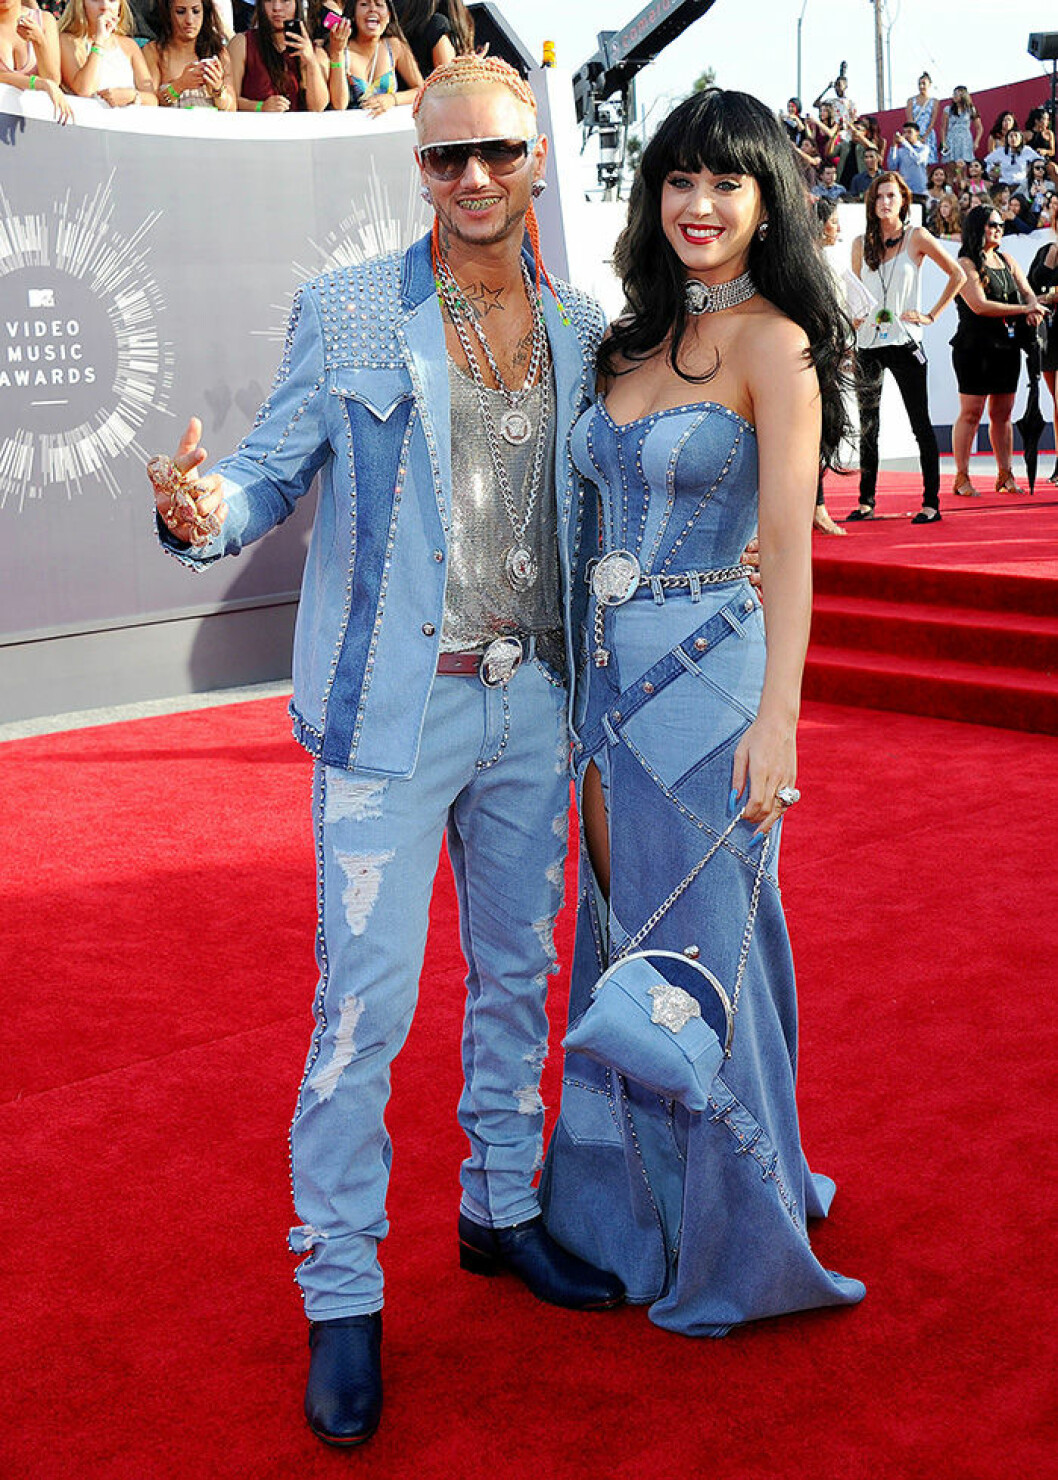 En bild på sångerskan Katy Perry och rapparen Riff Raff på MTV Video Music Awards 2014.